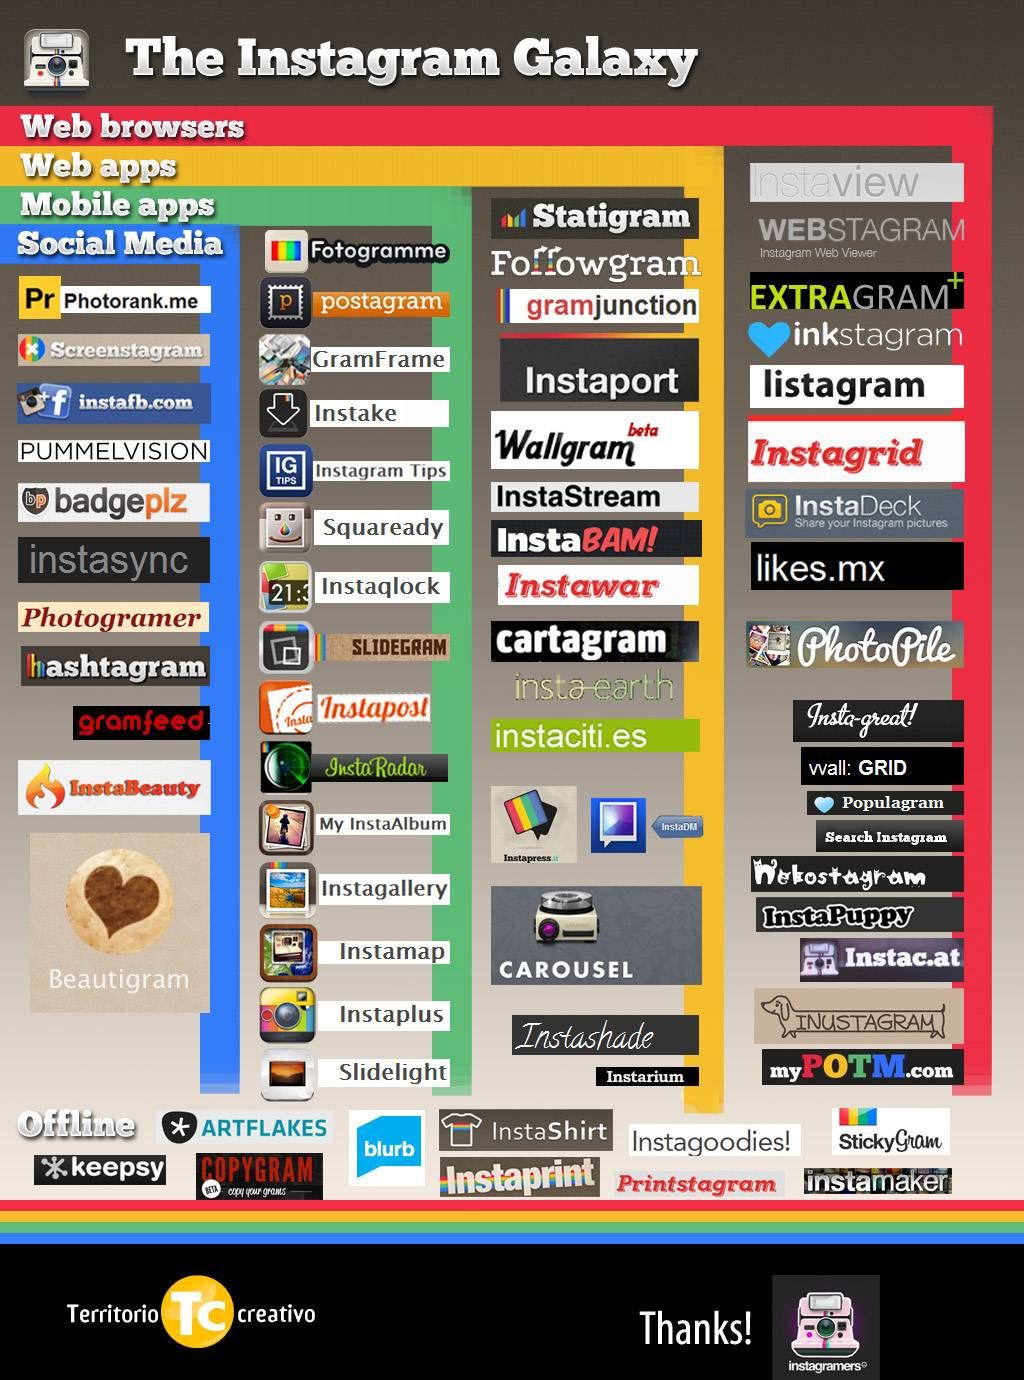 Instagram App Galaxy Infography